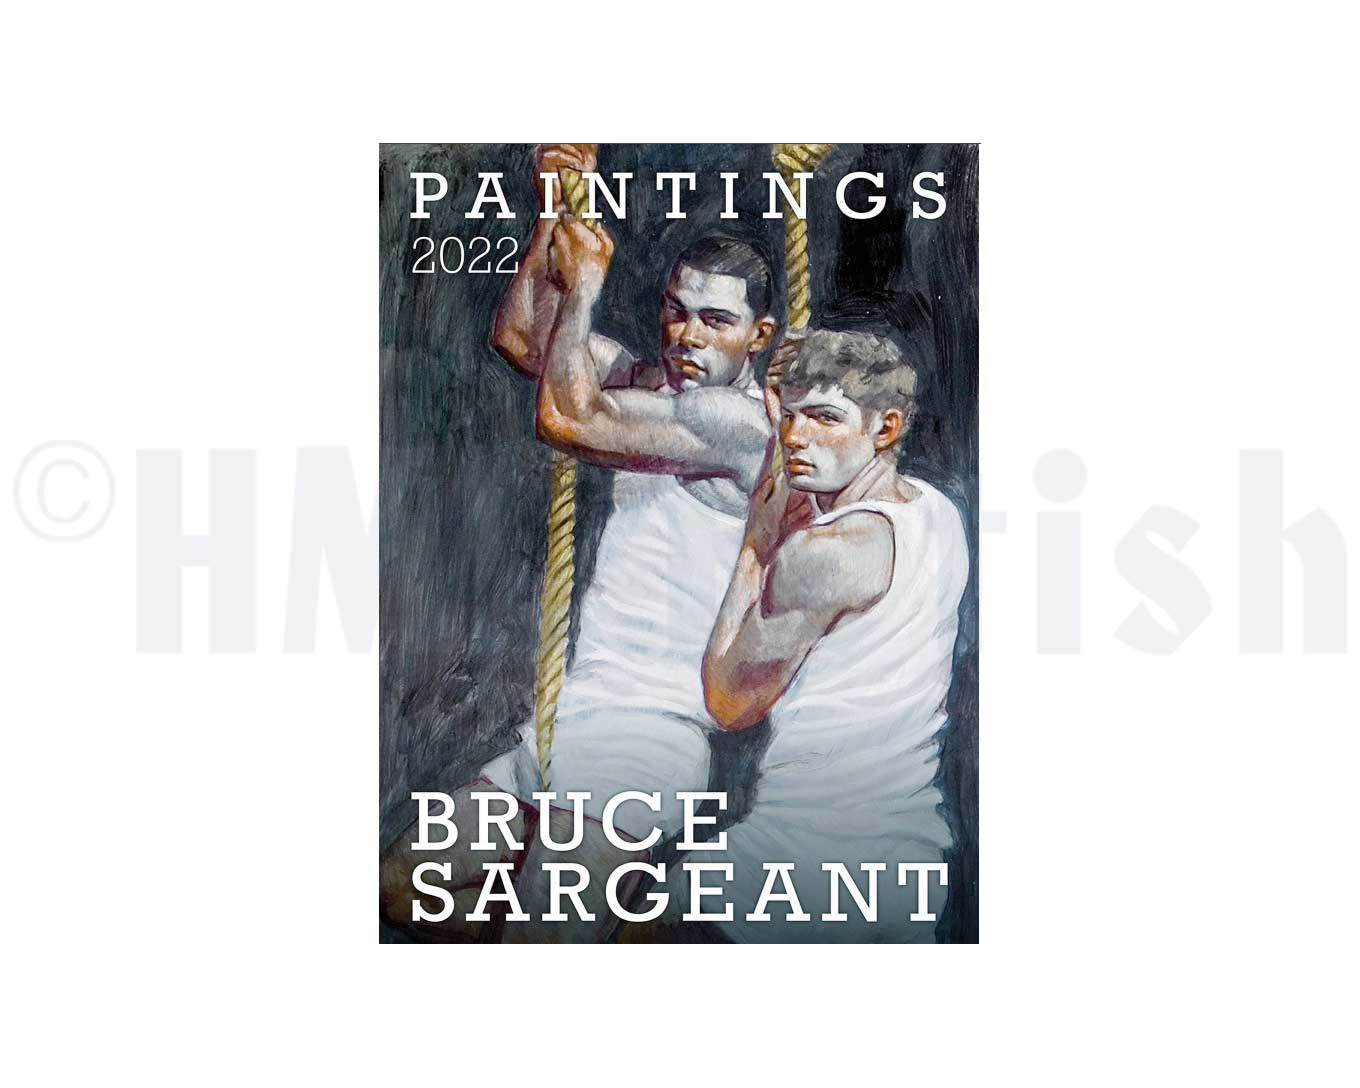 Bruce Sargeant Paintings 2020 New York-based artist Mark Beard has created the last two decades to painting the work of the fictive artist Bruce Sargeant, who idealized and celebrated the beauty of the male form. His subtly-toned oil paintings of young men at sport and leisure are reminiscent of classic figure painting, highlighting his beaux arts training, yet their gentle elegance continues to speak to contemporary audiences.His works are in museum collections worldwide.